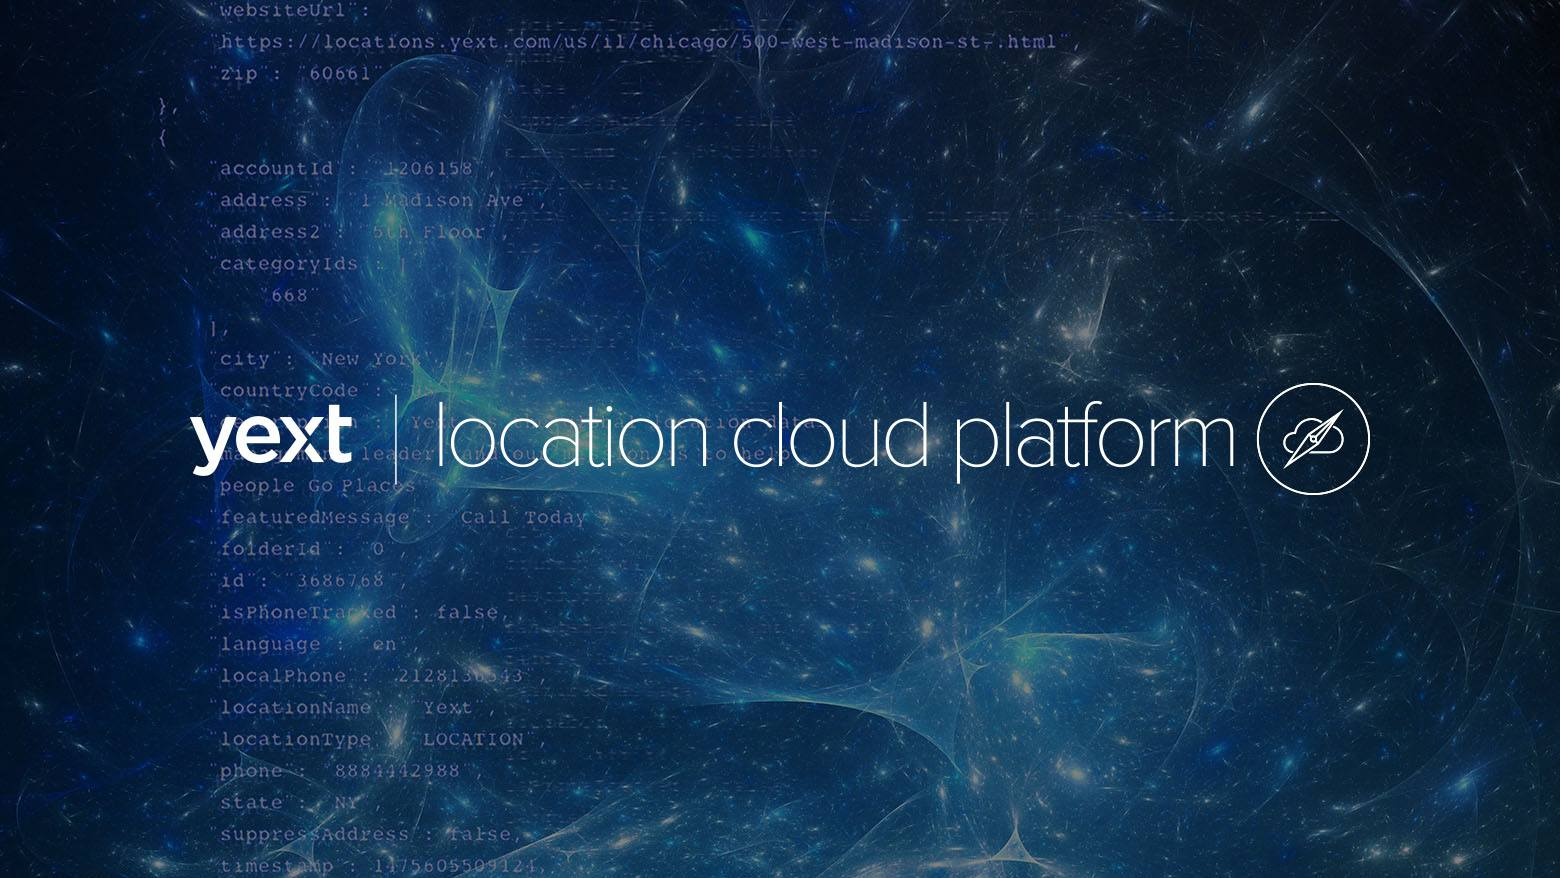 location cloud platform